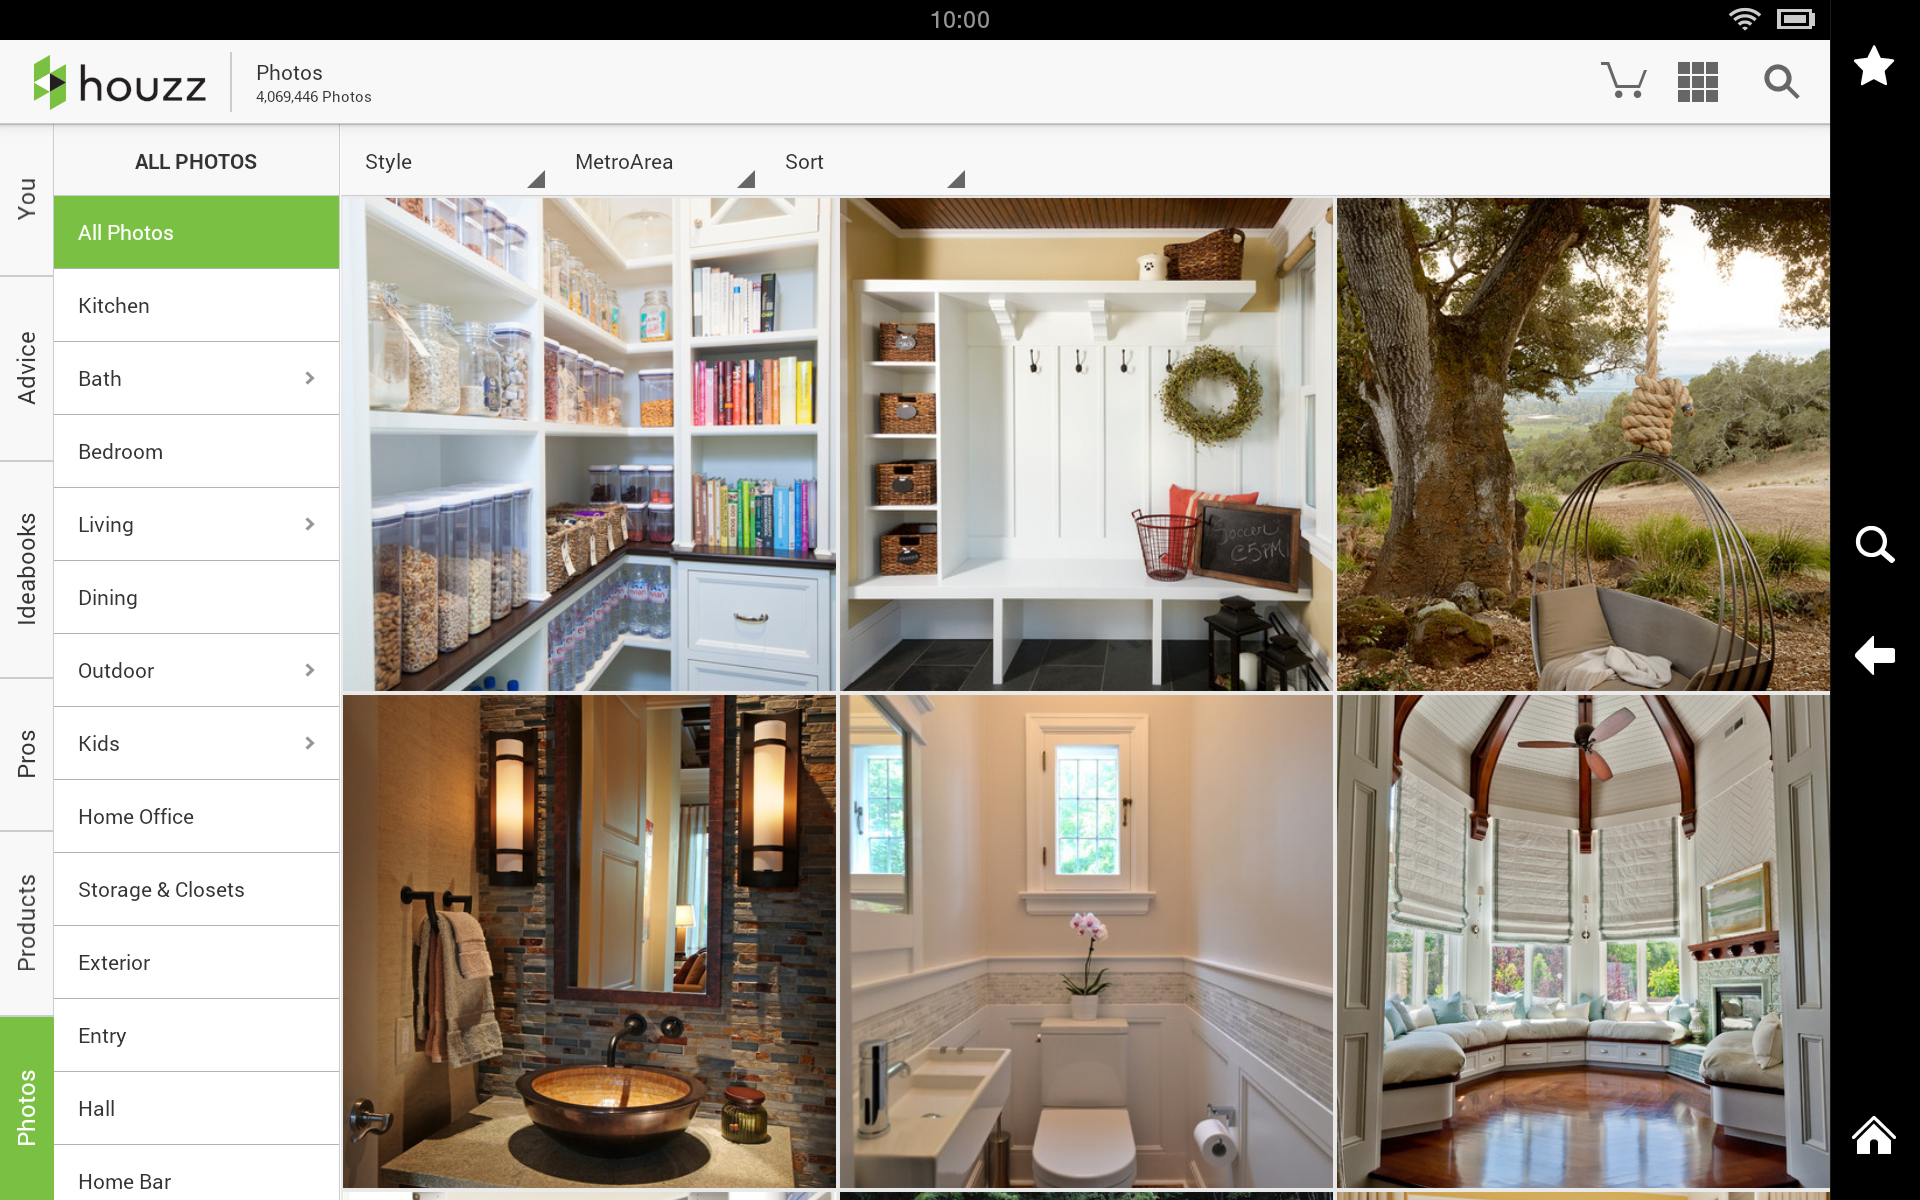 Houzz interior design ideas appstore for android Houzz design app